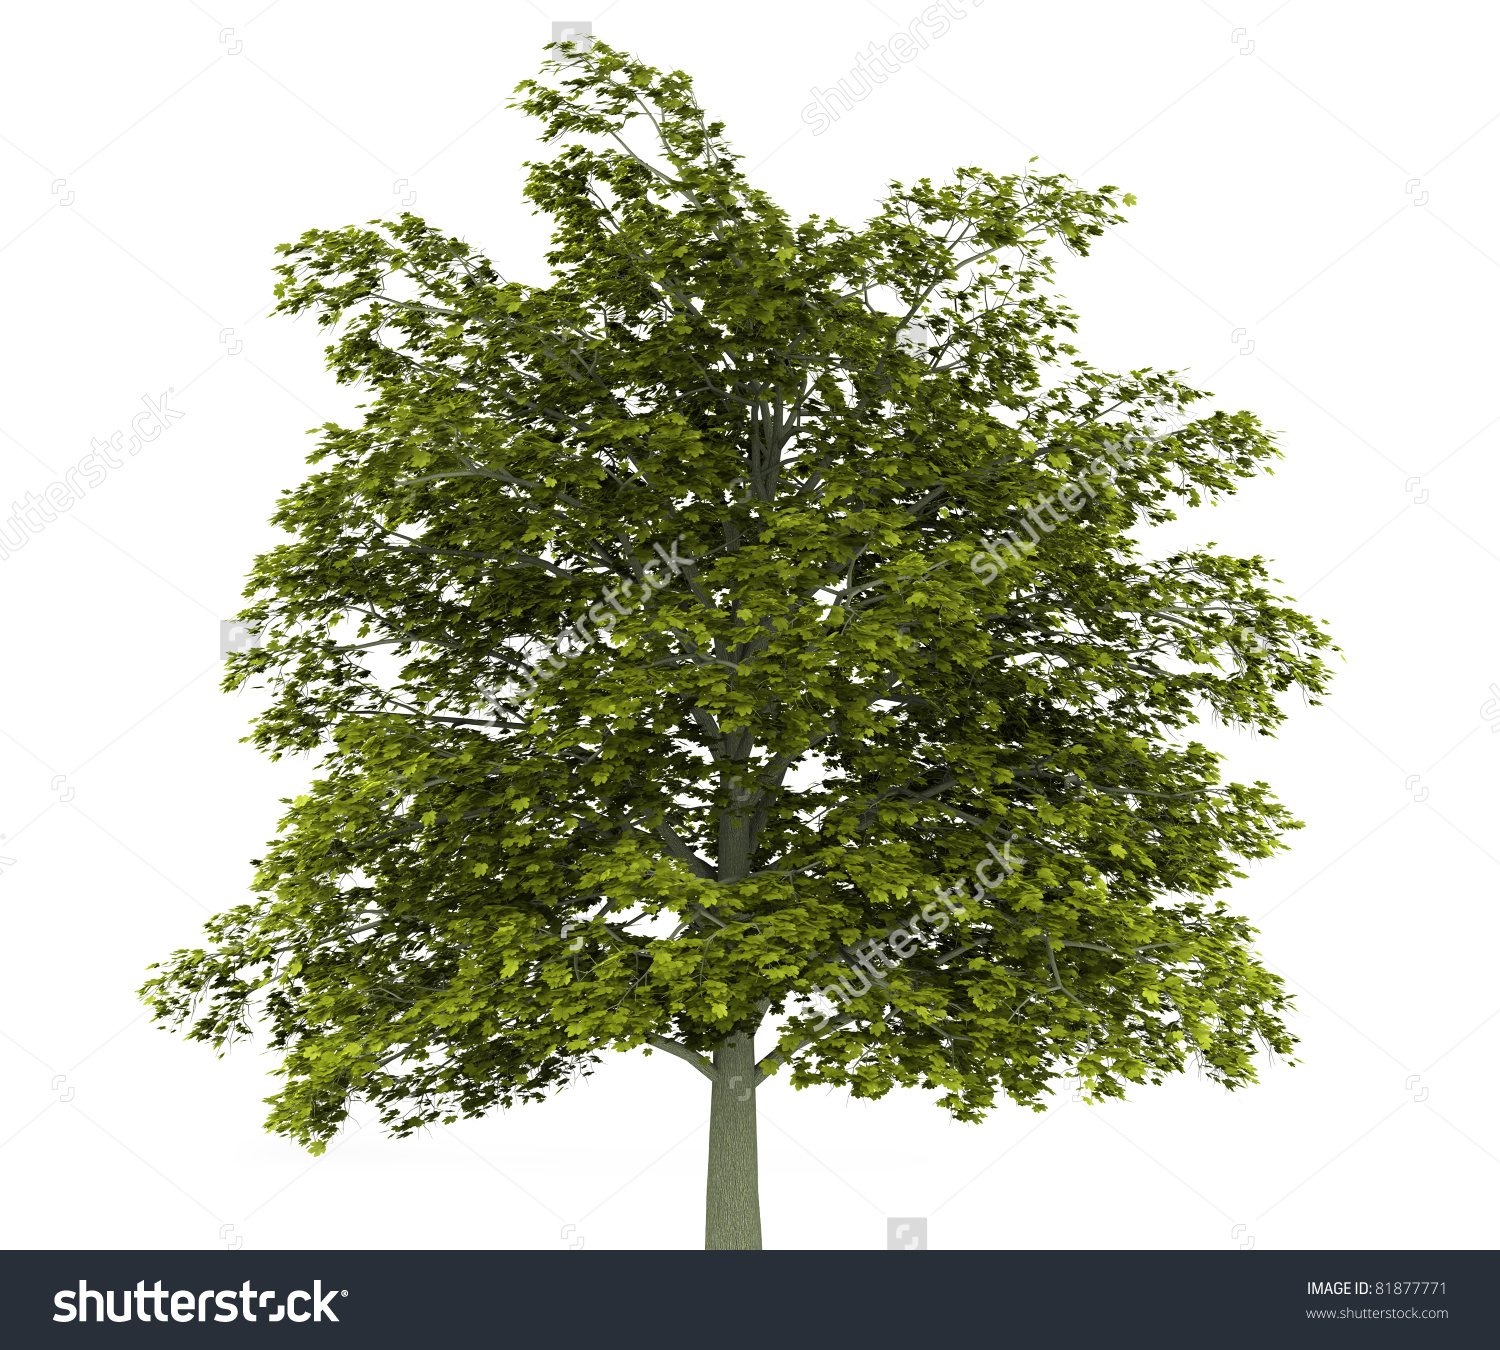 Norway Maple Tree Isolated On White Stock Illustration 81877771.